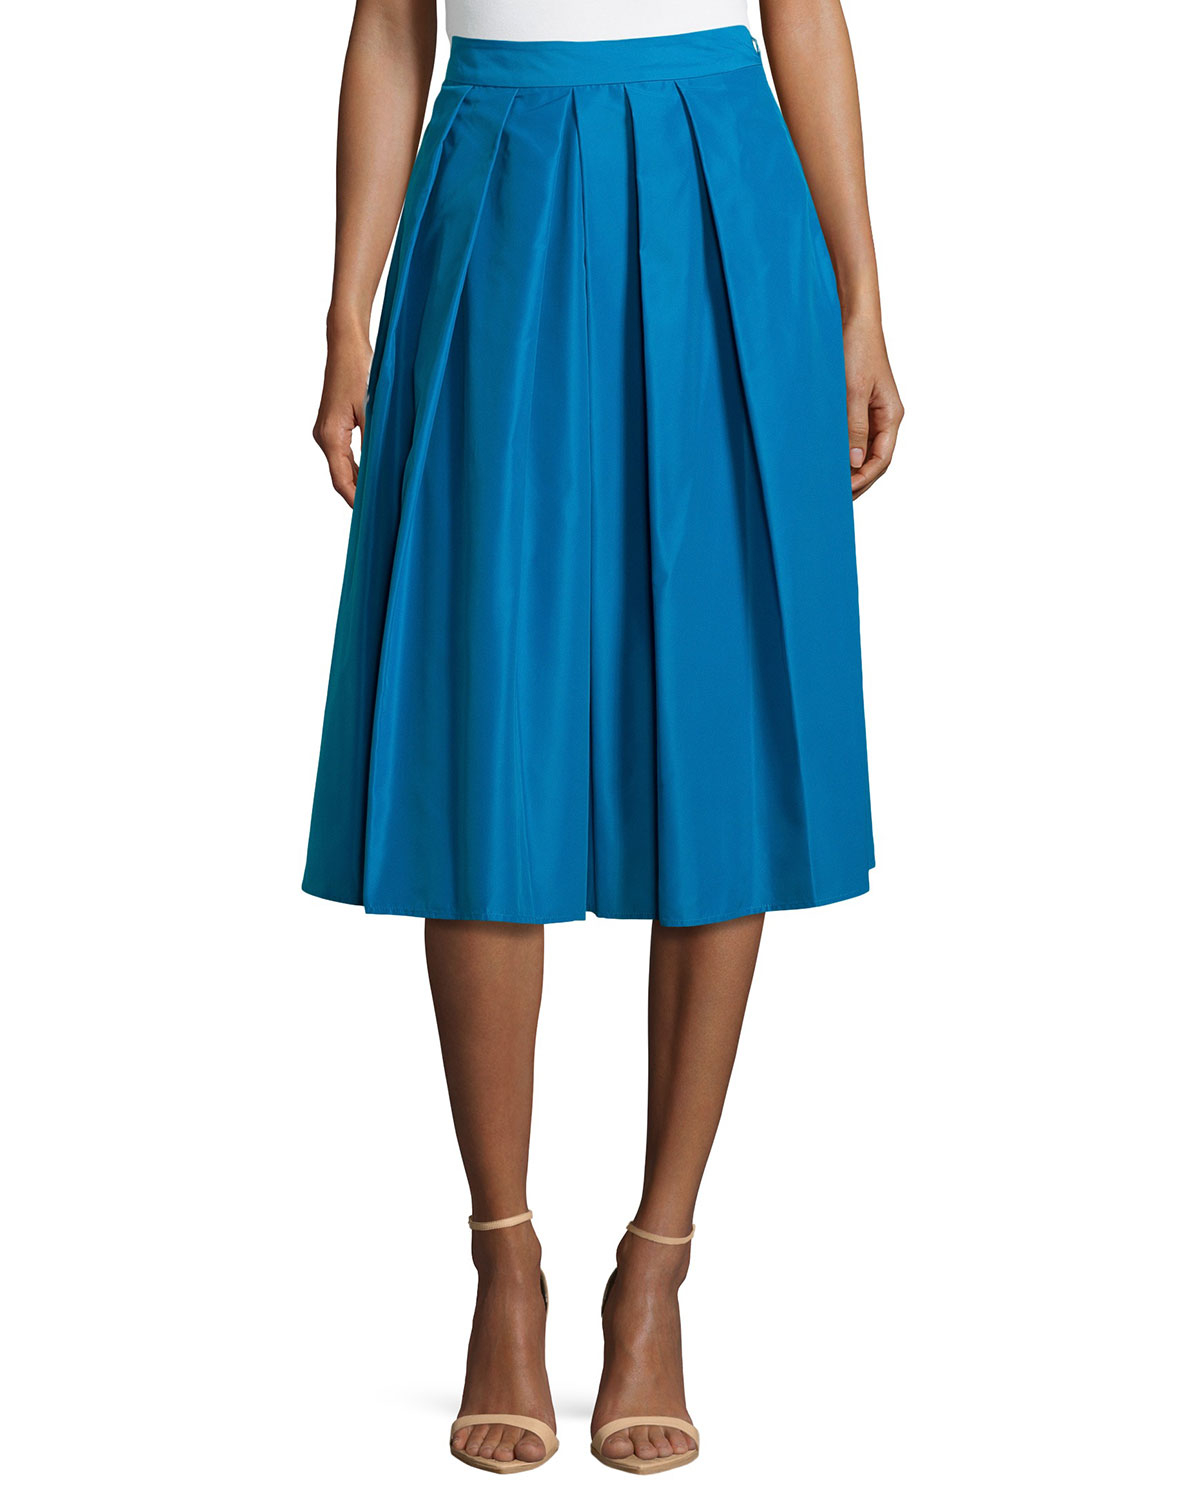 Catherine malandrino Ronnie Pleated A-line Midi Skirt in Blue | Lyst